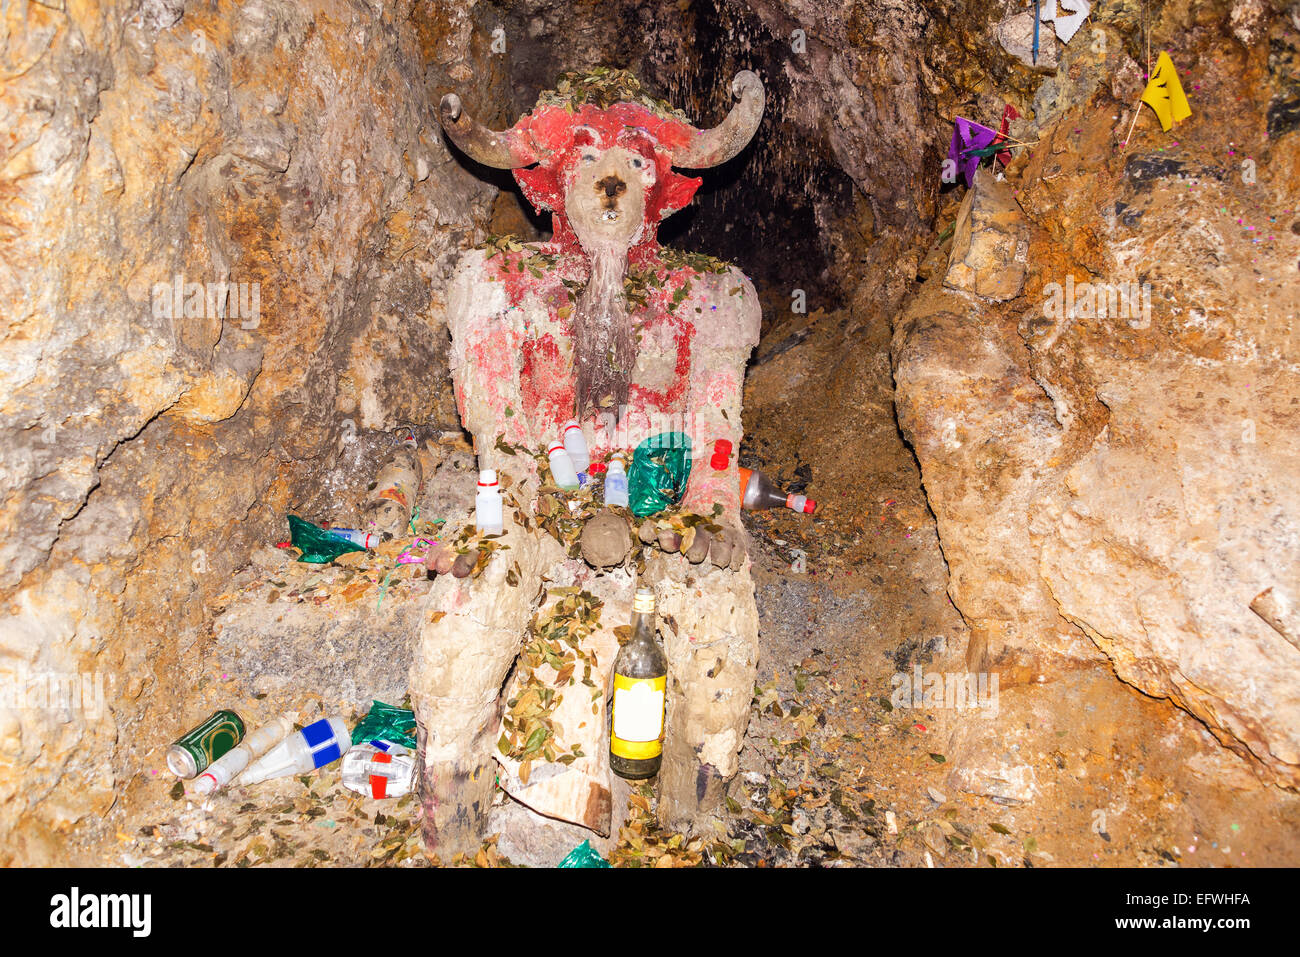 Idol to 'El Tio' in a mine in Potosi, Bolivia.  Miners worship the idol and leave it offerings. - Stock Image